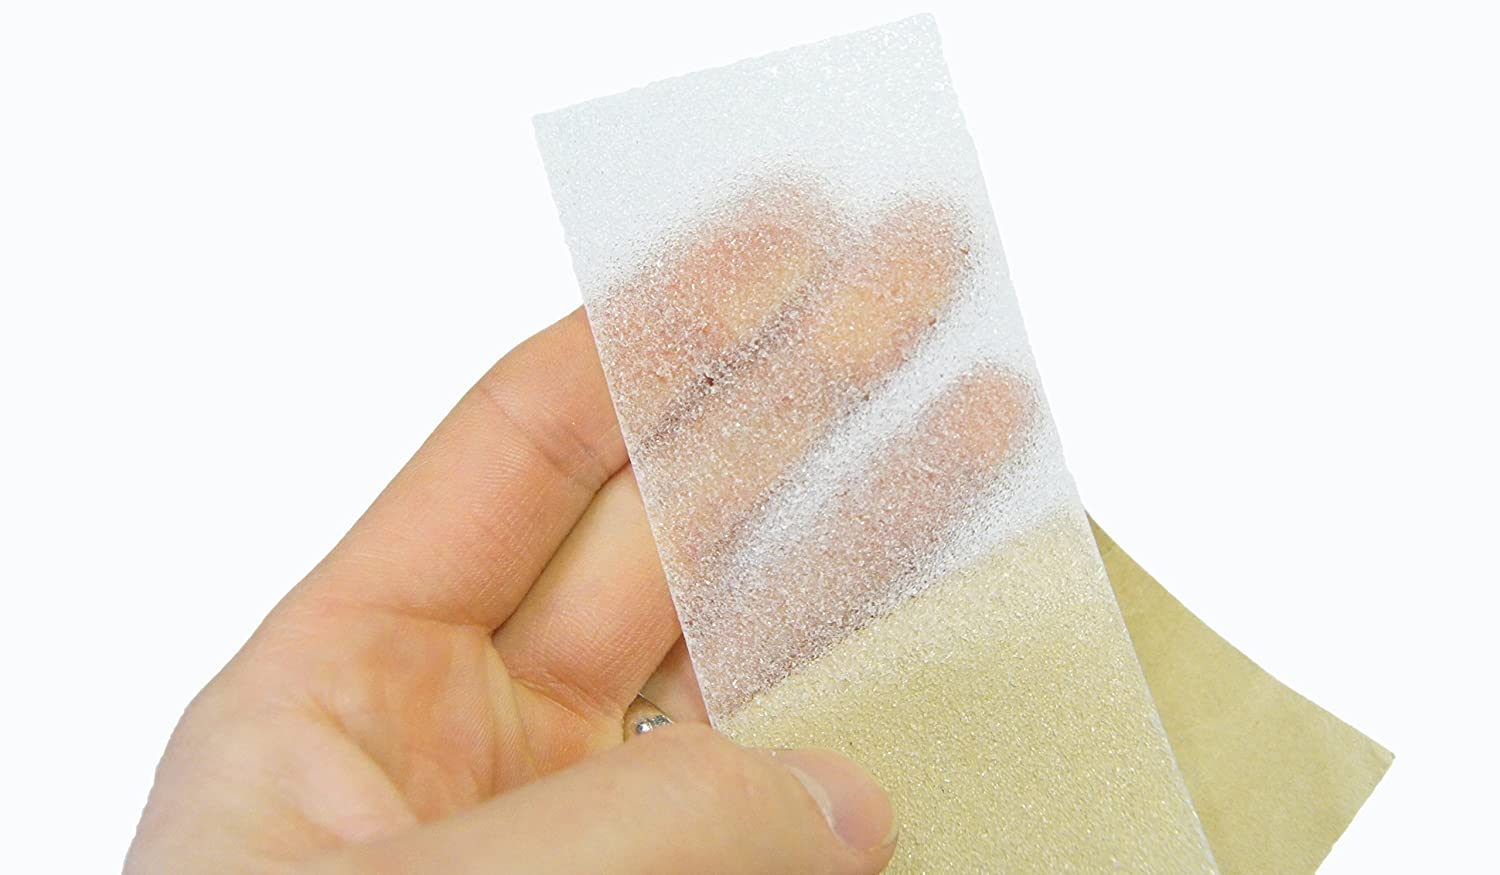 60 Foot, Non Slip Clear, Translucent Adhesive Grit Tape And Roller,  PVC Free, 2 Inch Wide Steady Treads Installation Kit     Amazon.com